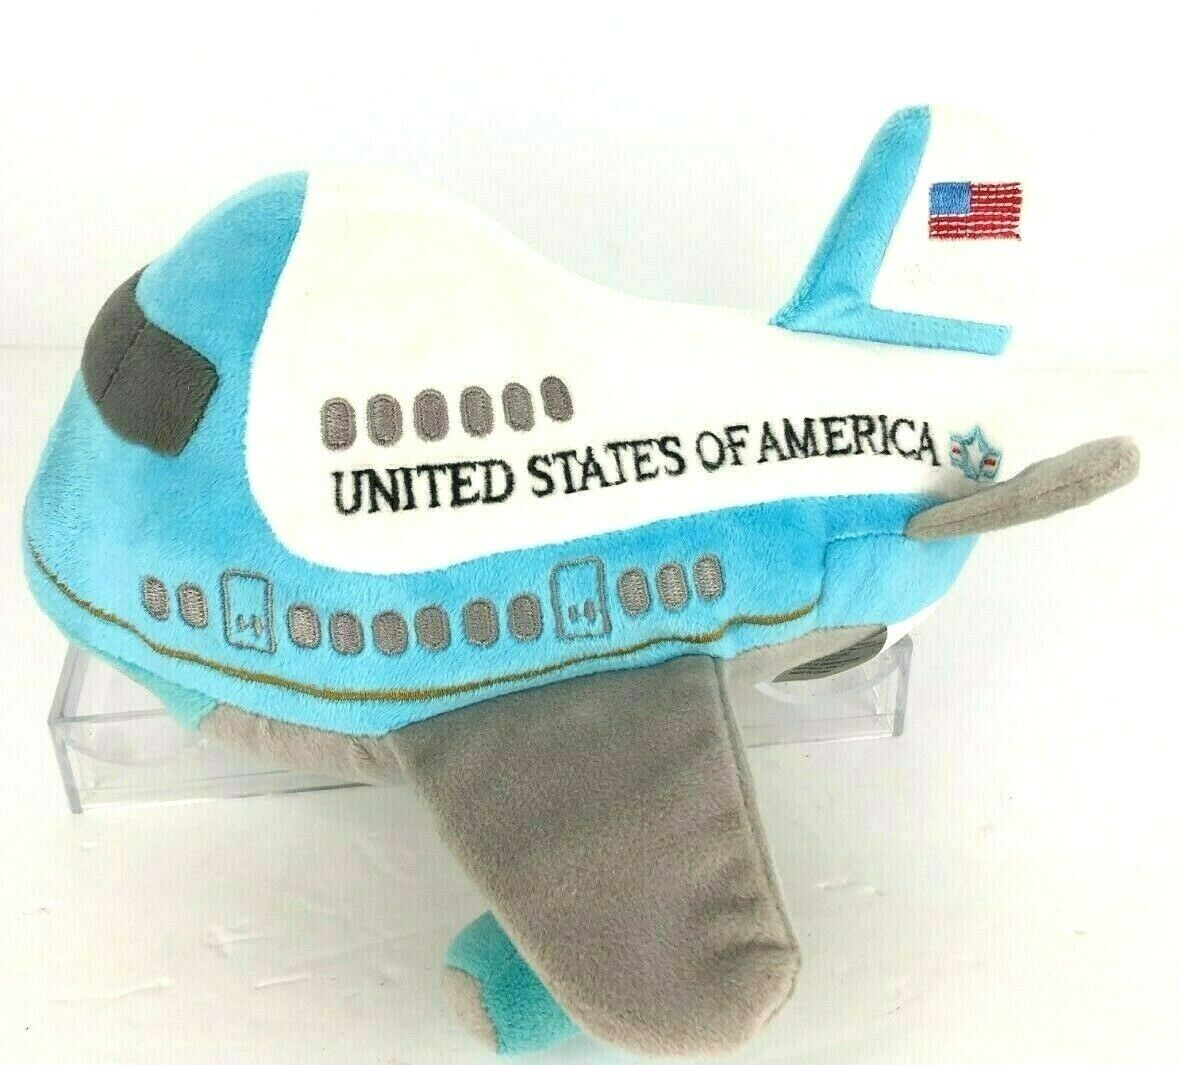 Primary image for Presidential Seal Air Force One Plane Plush Toy Take Off Sound Flag Stuffed